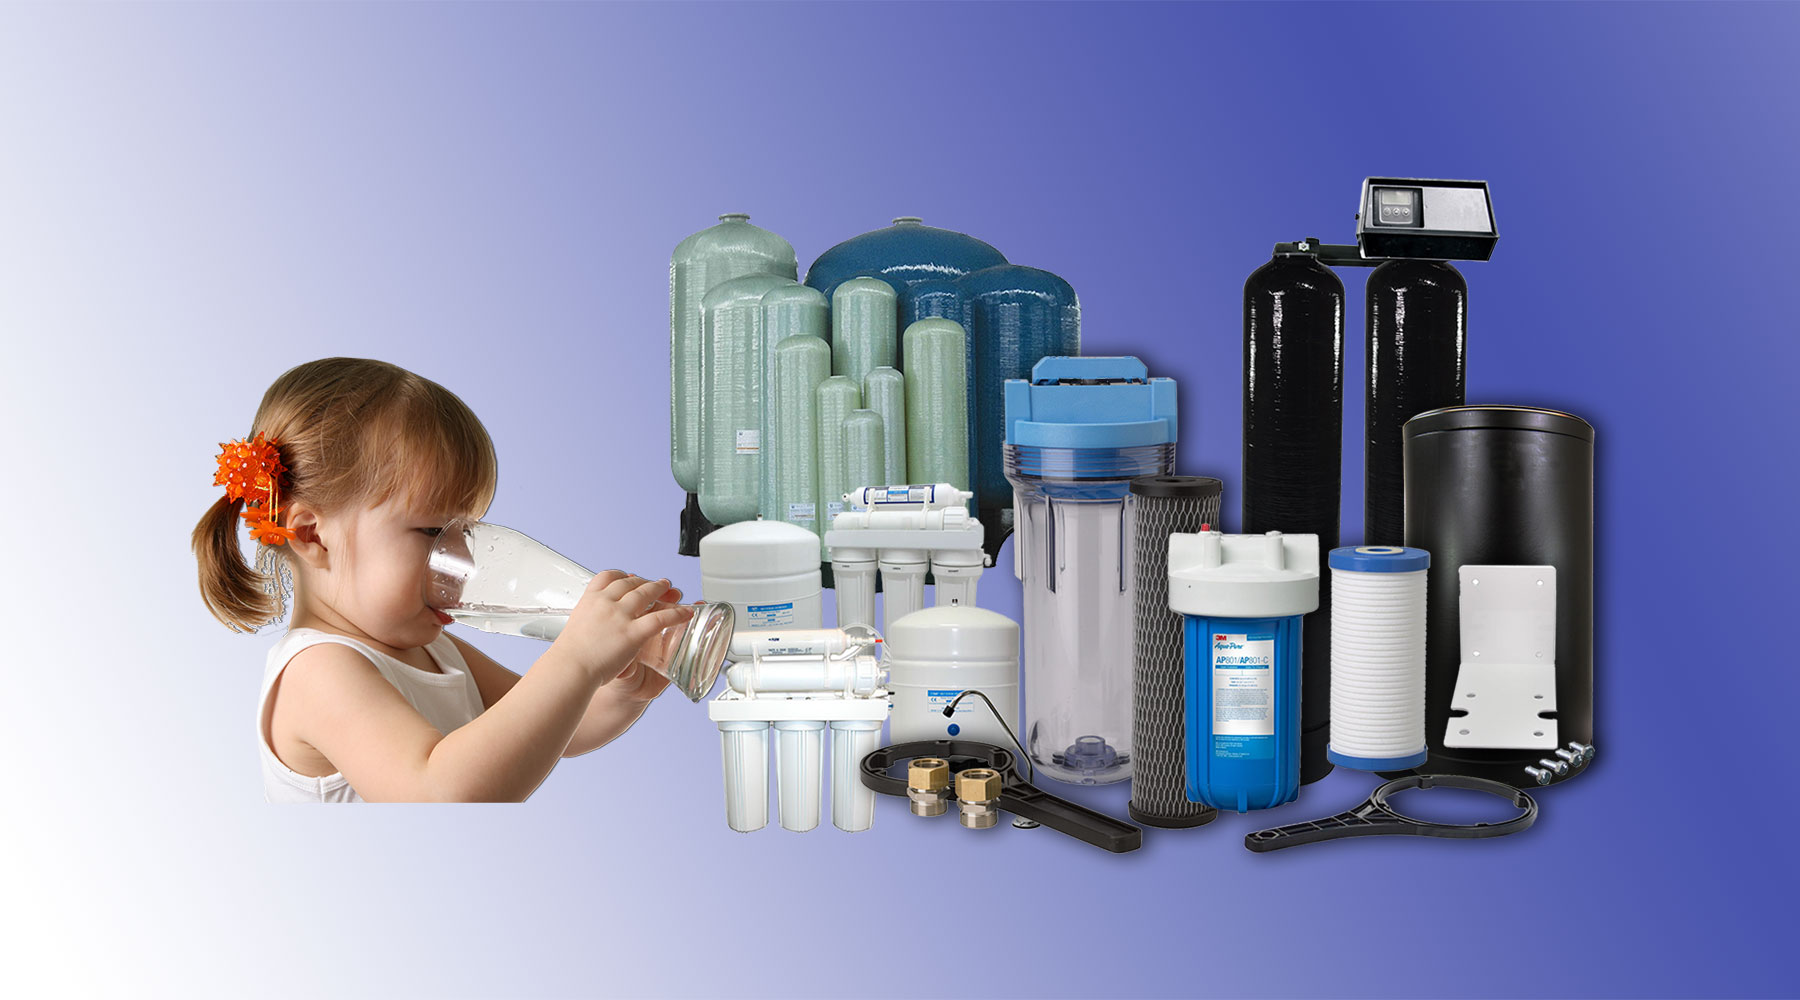 Deland Plumber handles all plumbing water filtration systems.